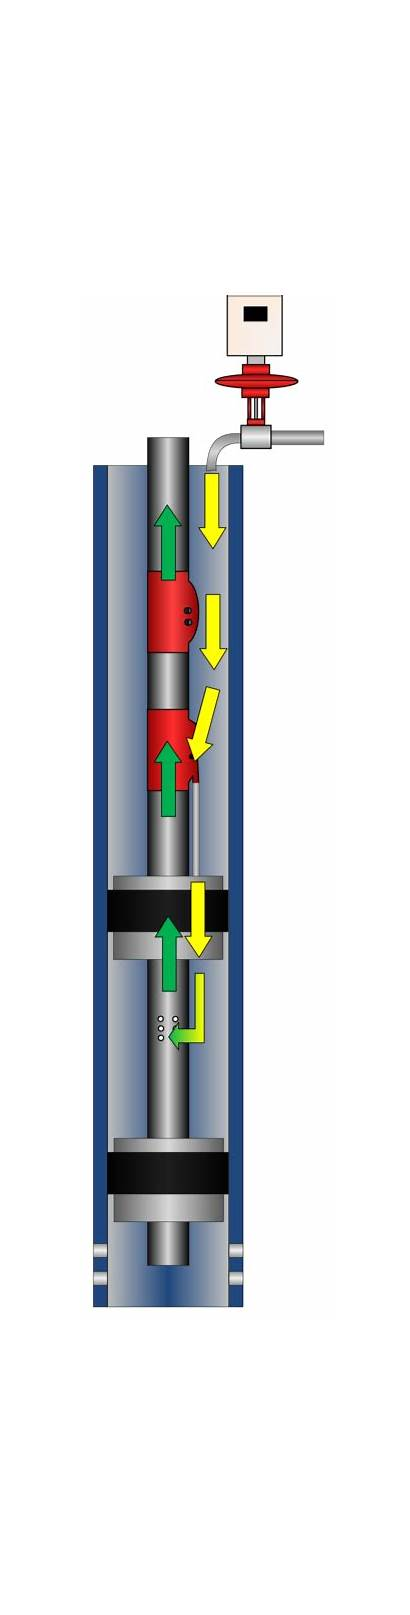 Gas Lift System Chamber Application Energy Volume